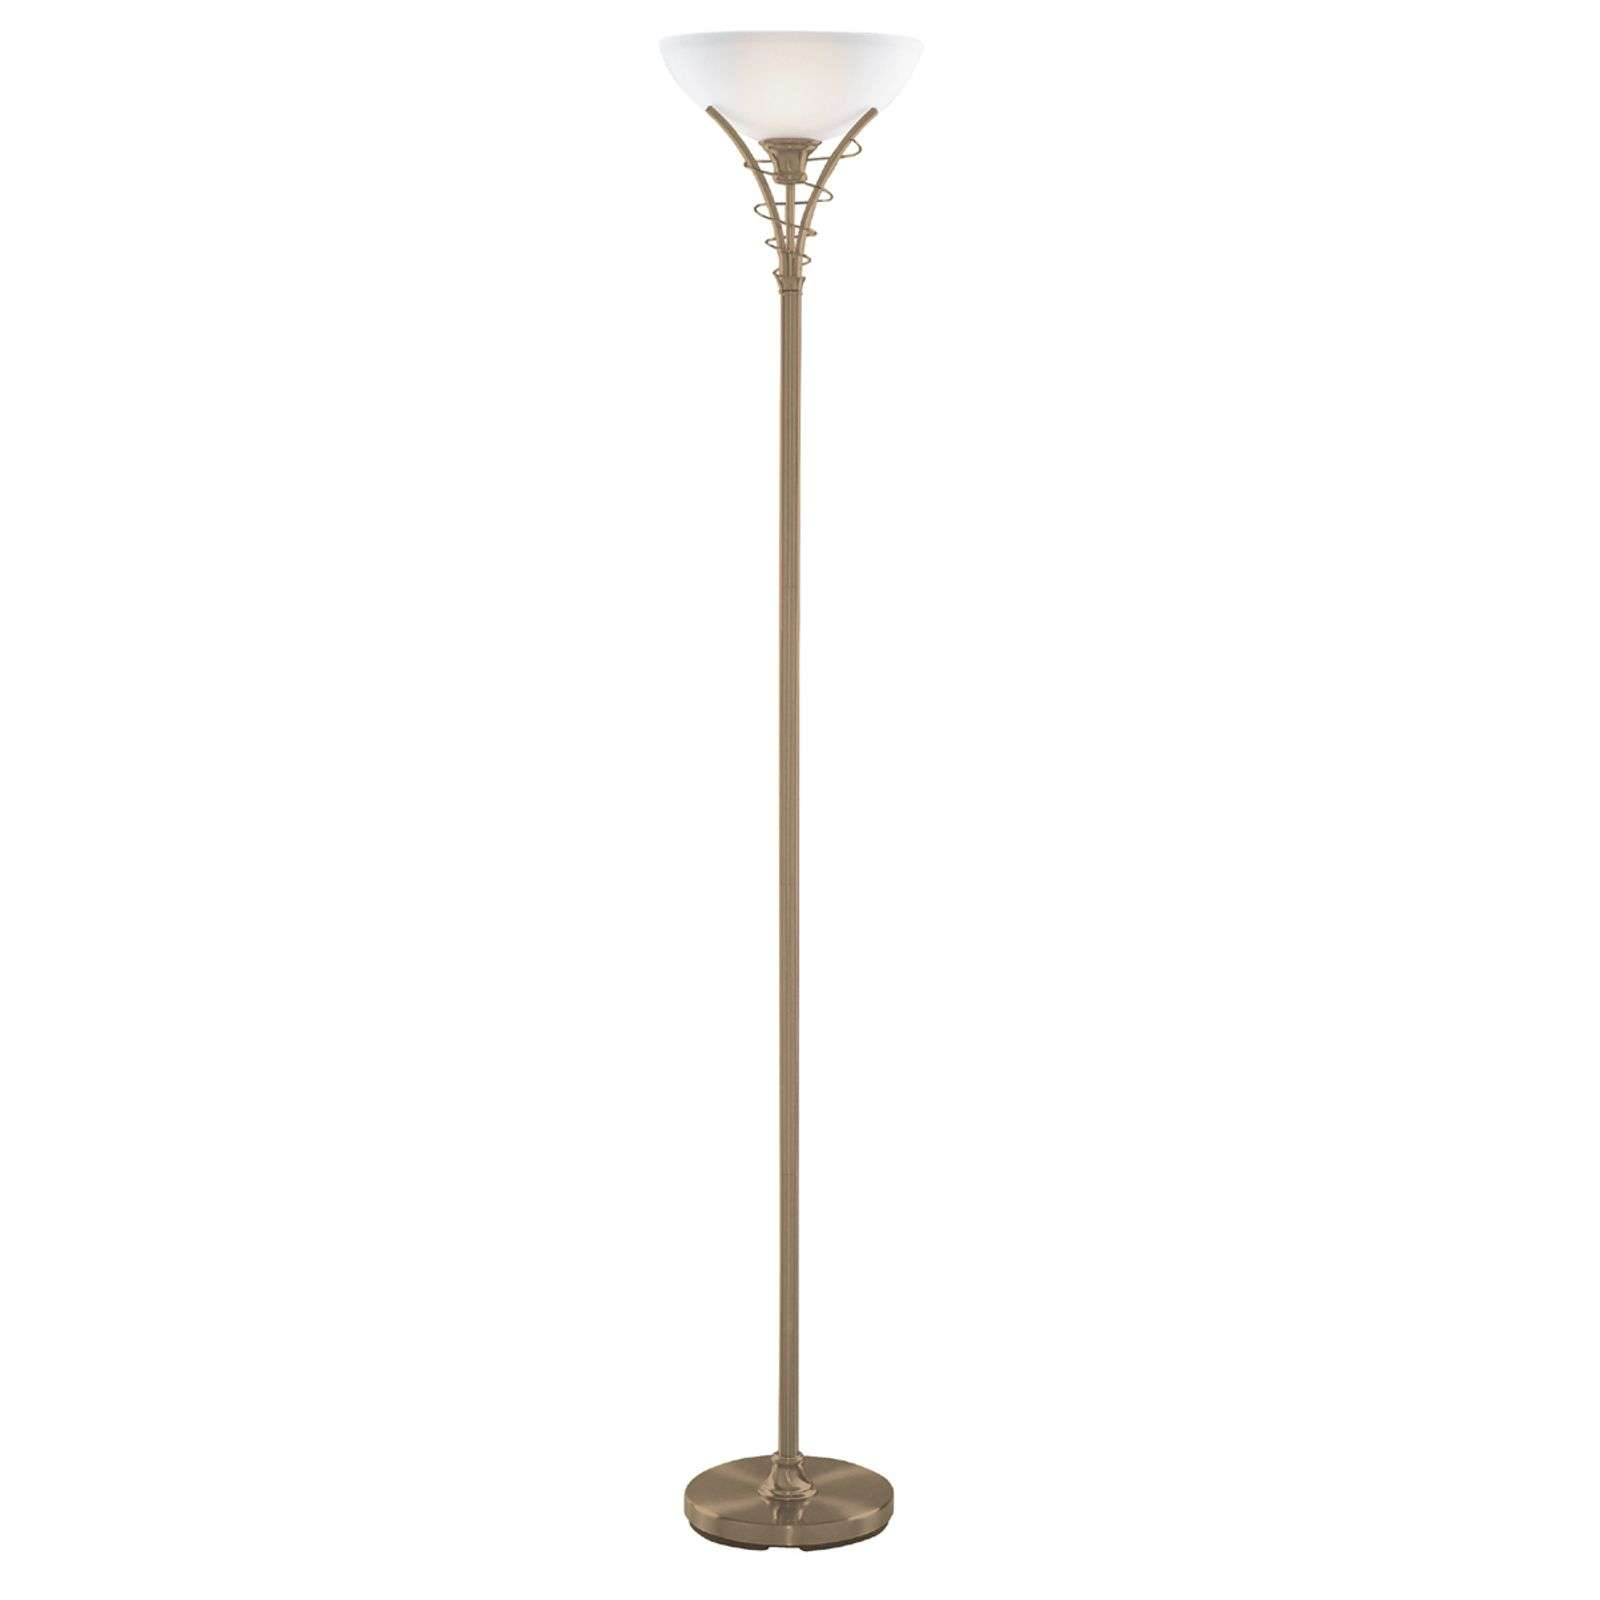 Lampadaire intemporel LINEAS coloris laiton ancien